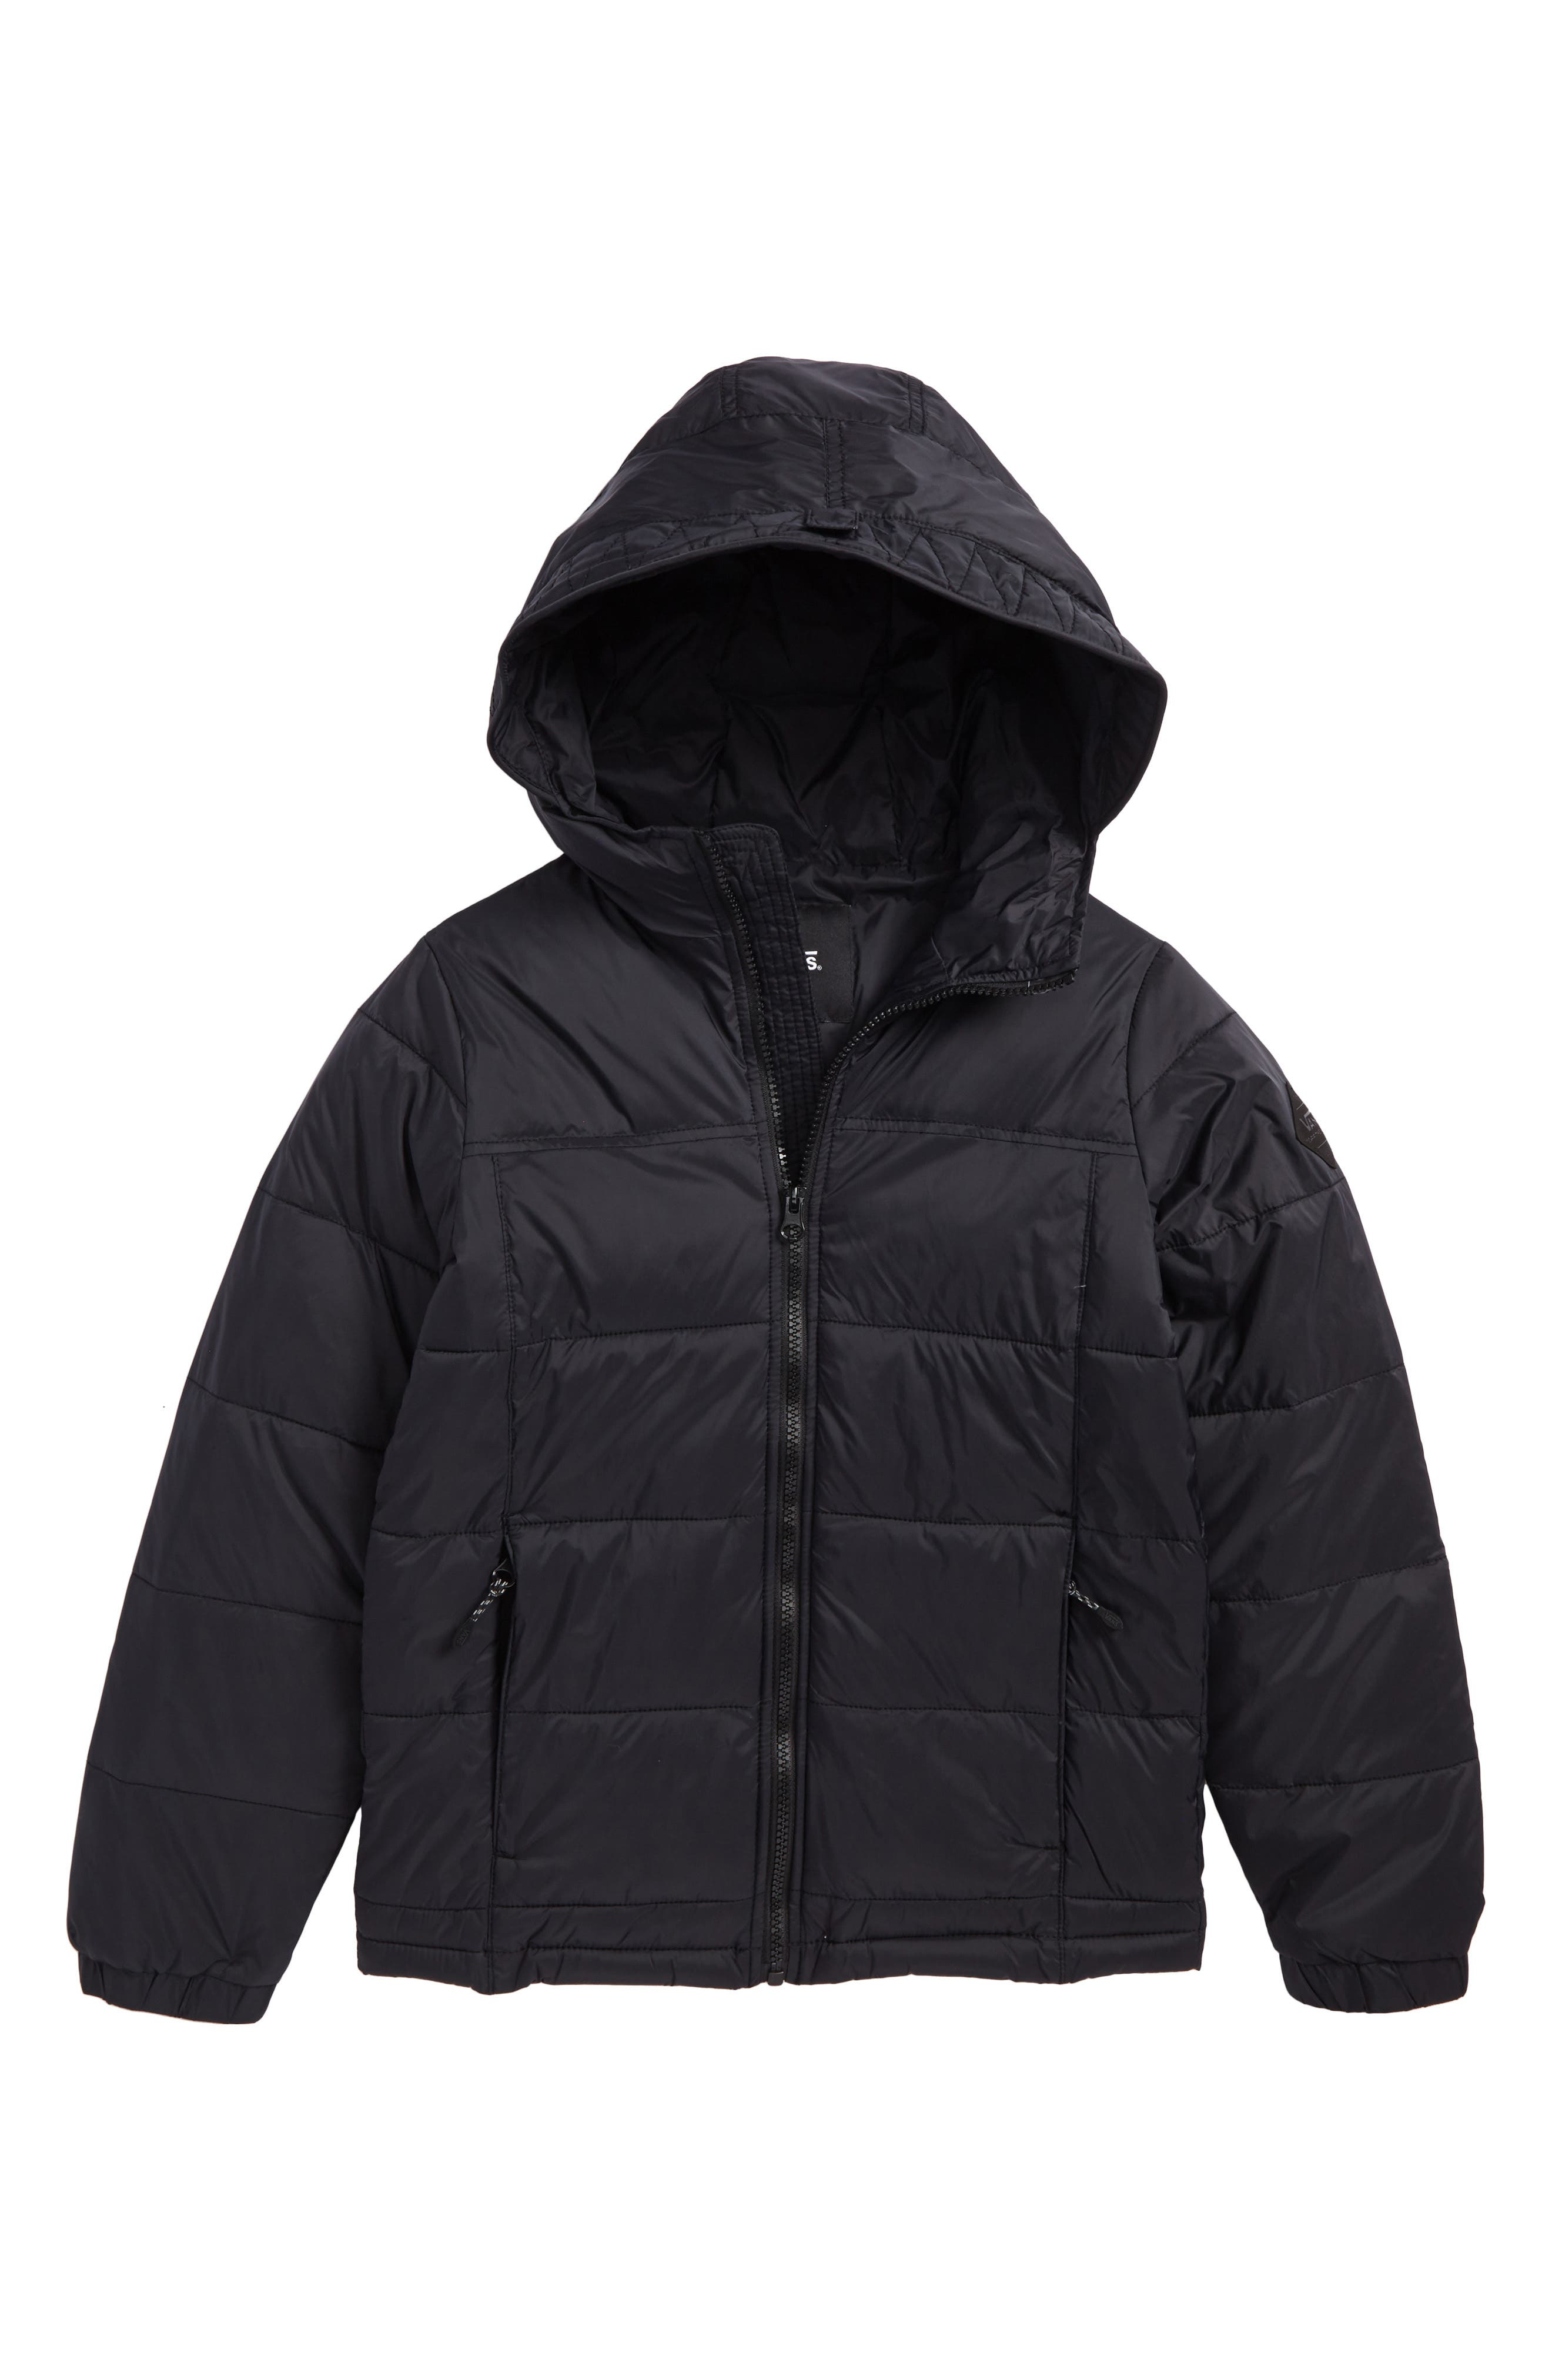 Volcom sequoia jacket black